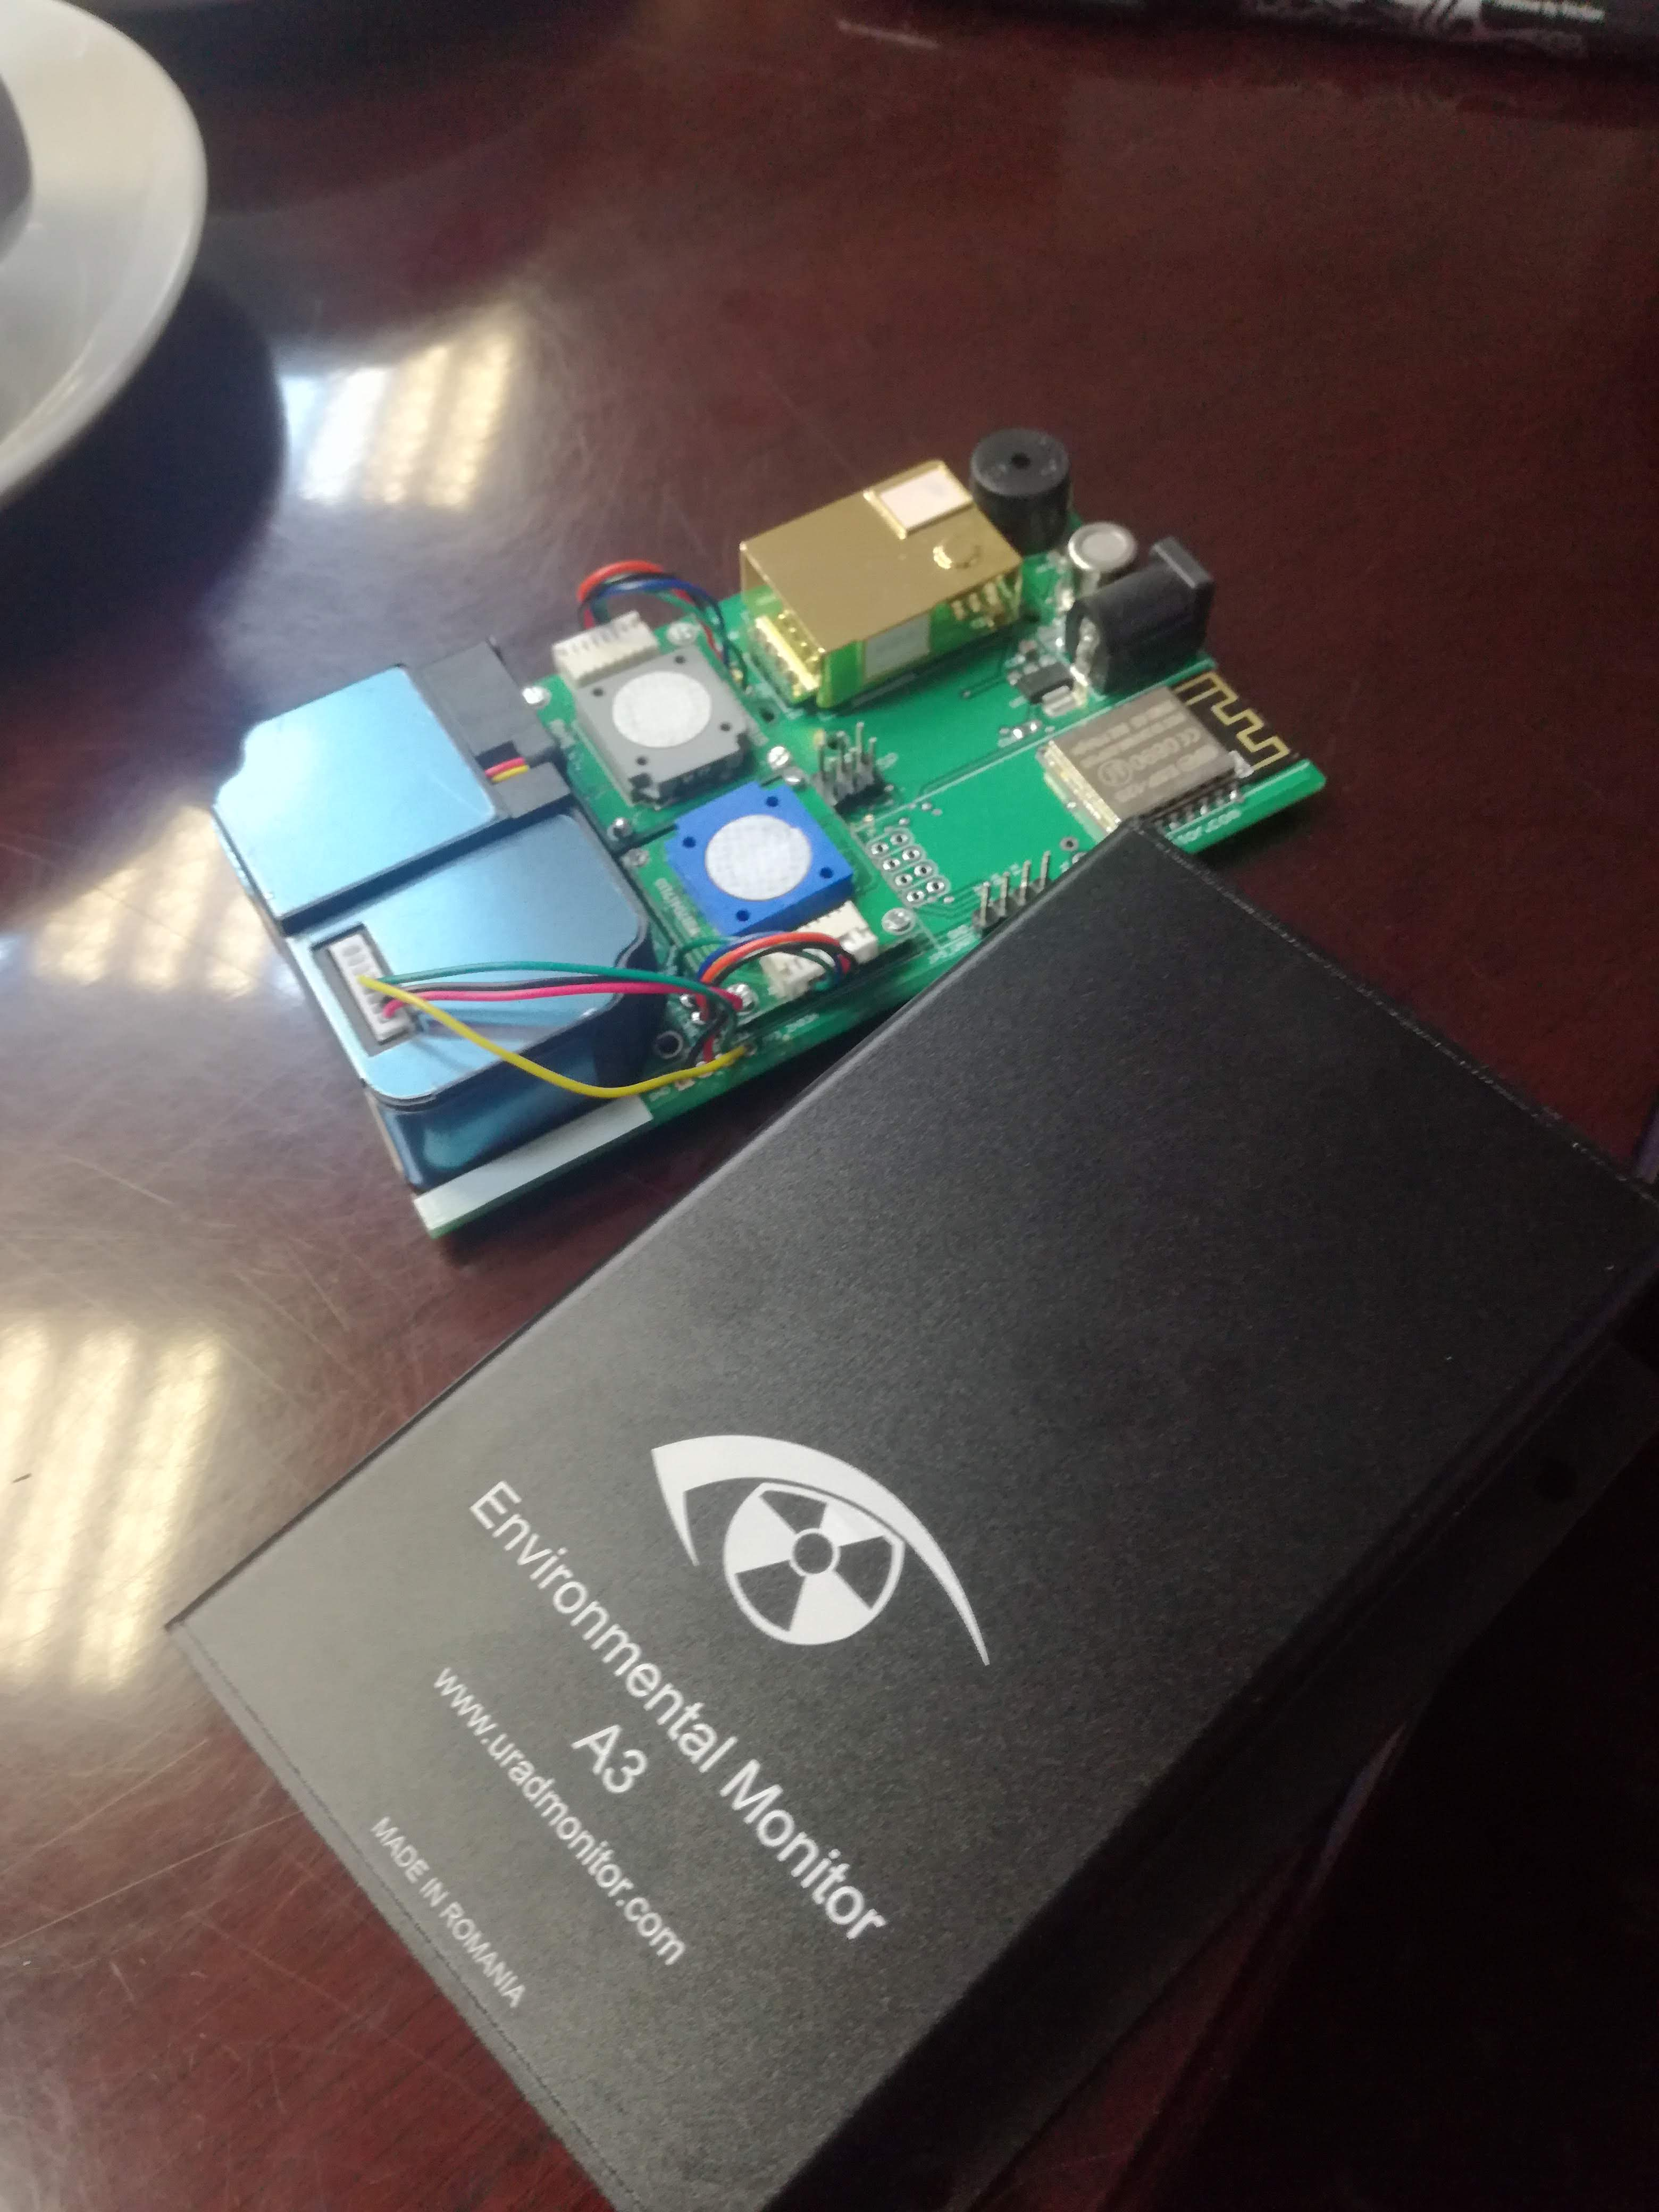 The air quality monitoring module